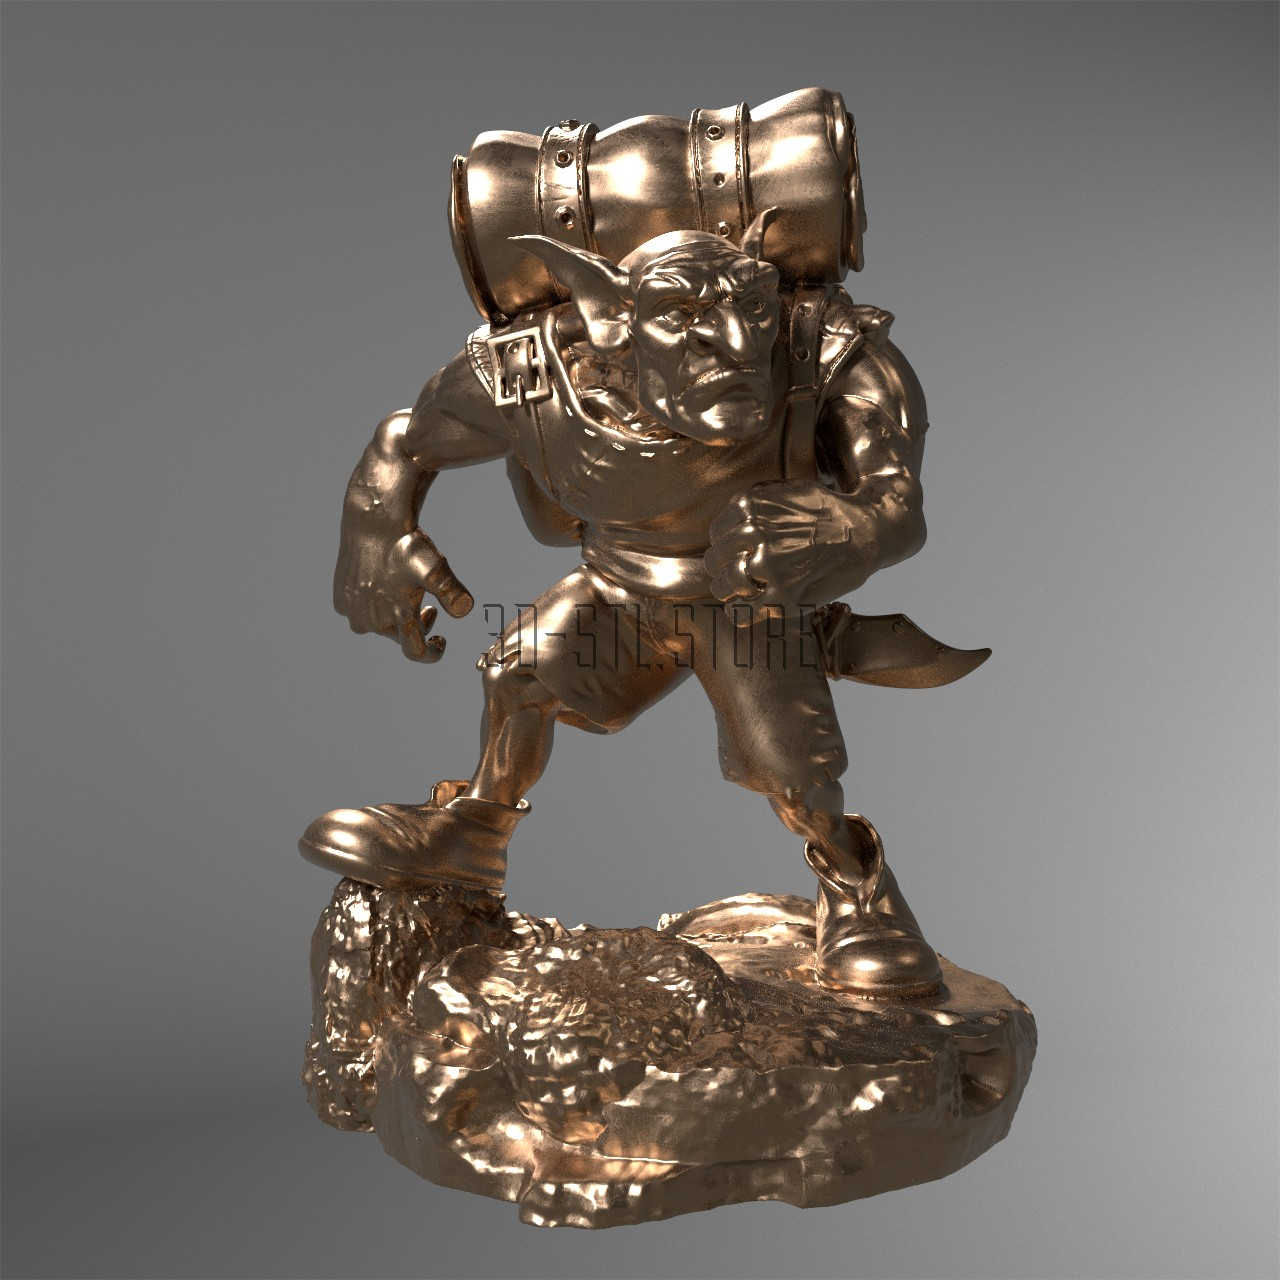 Sculpture Troll, 3d models (stl)